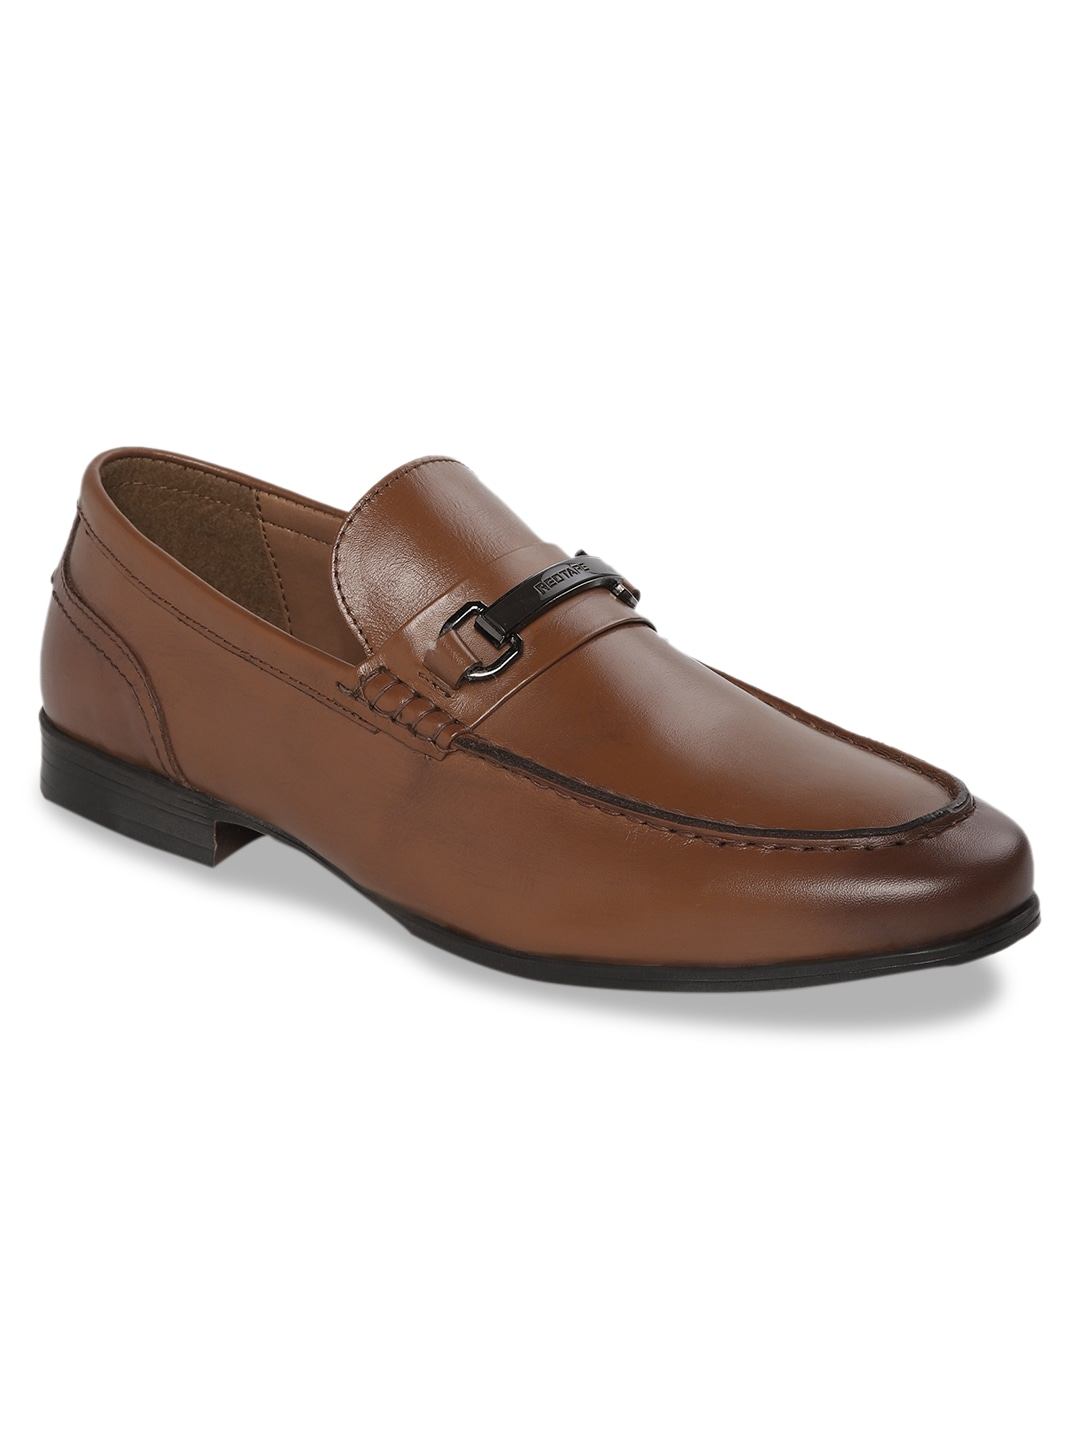 Tan Brown Solid Leather Formal Loafers